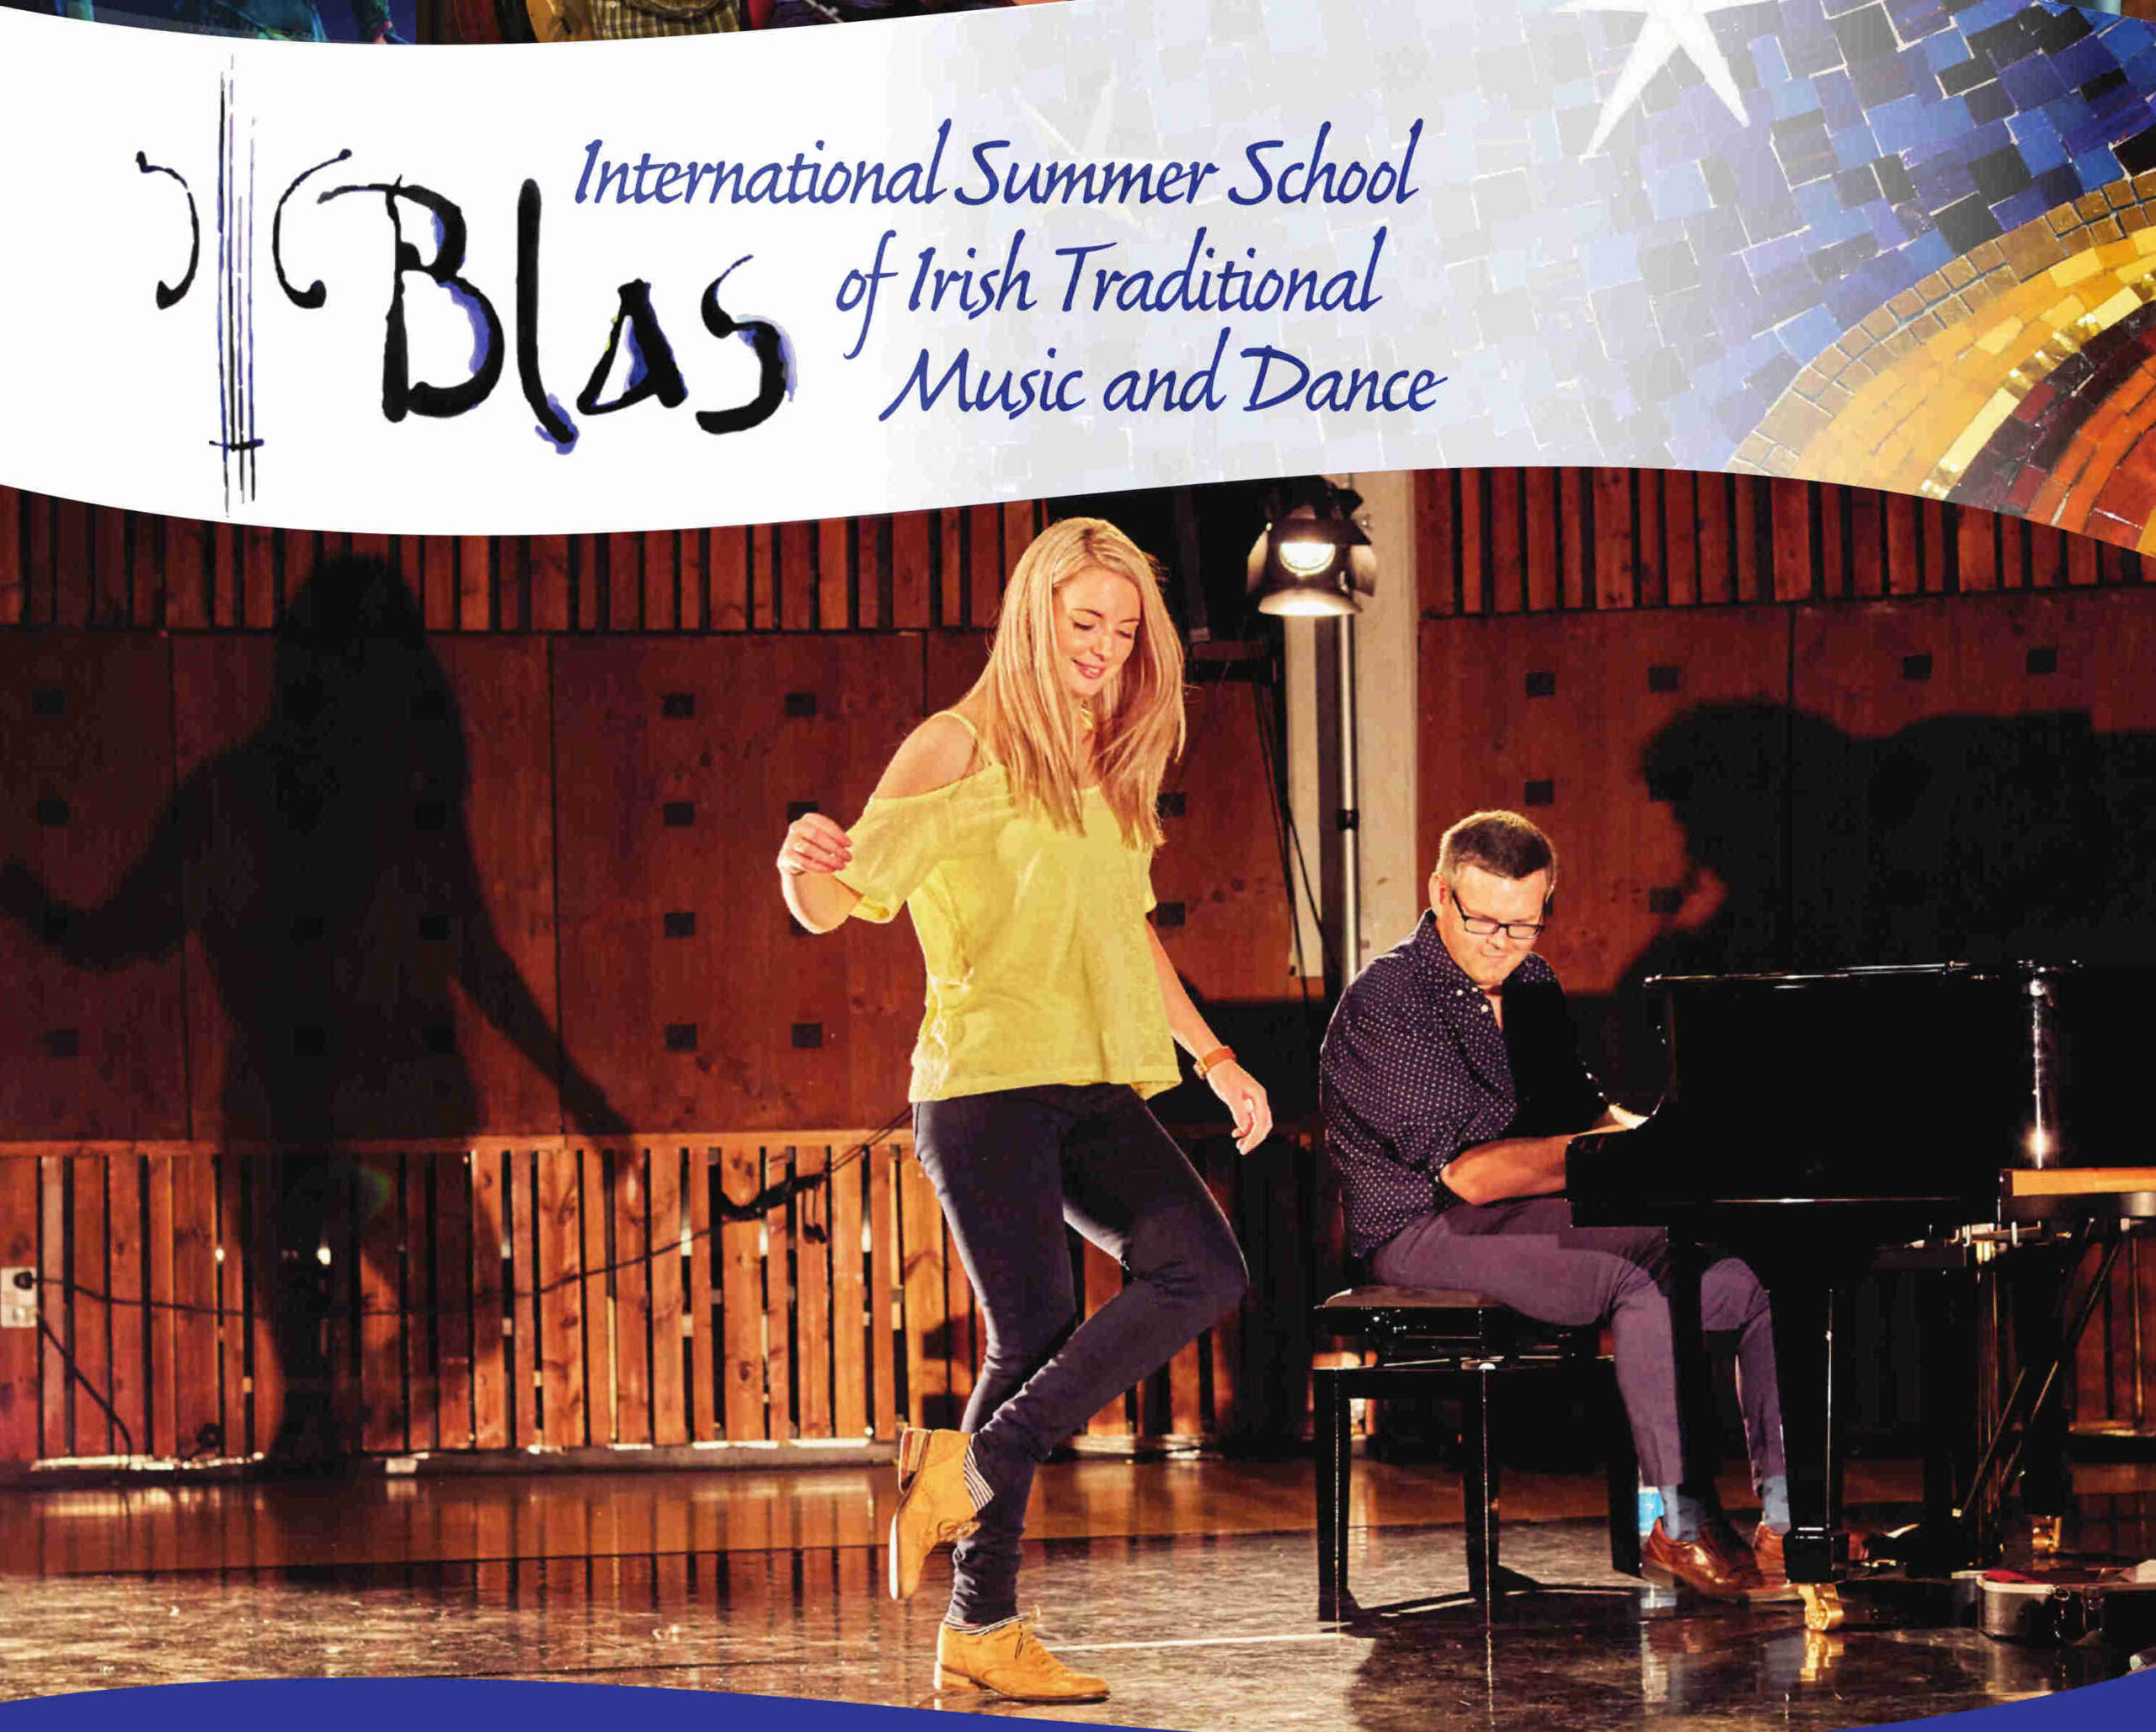 Blas 2021- Blas International Summer School of Irish Traditional Music and Dance will host its annual programme online from 21st June to 1st July